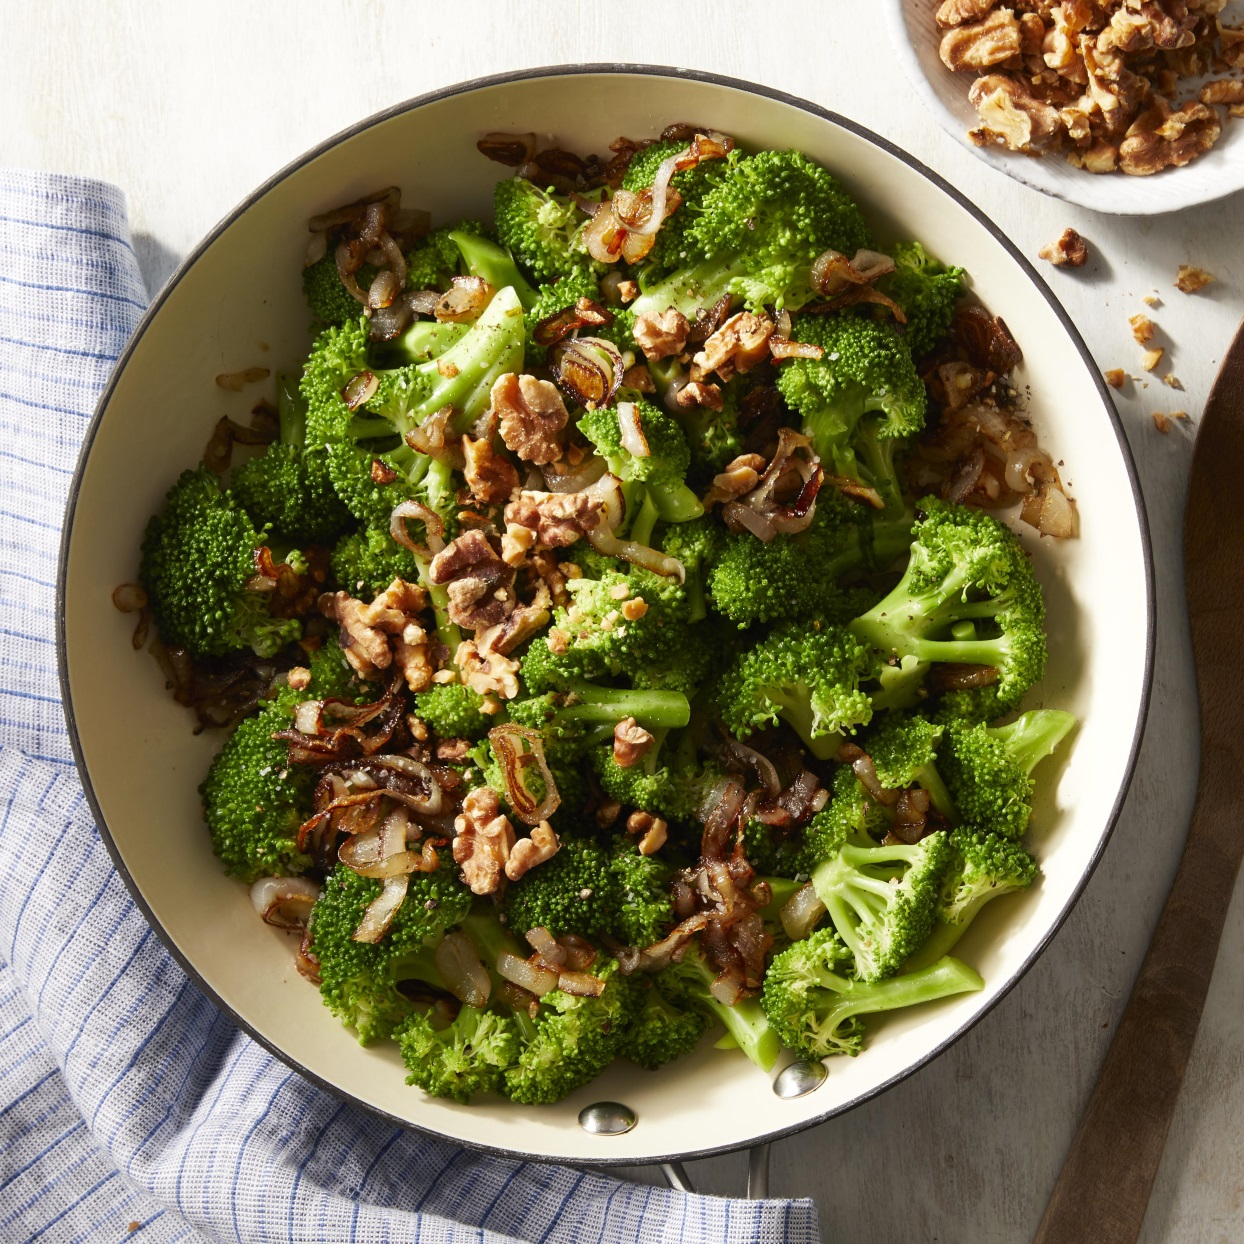 Broccoli with Caramelized Shallots Allrecipes Trusted Brands